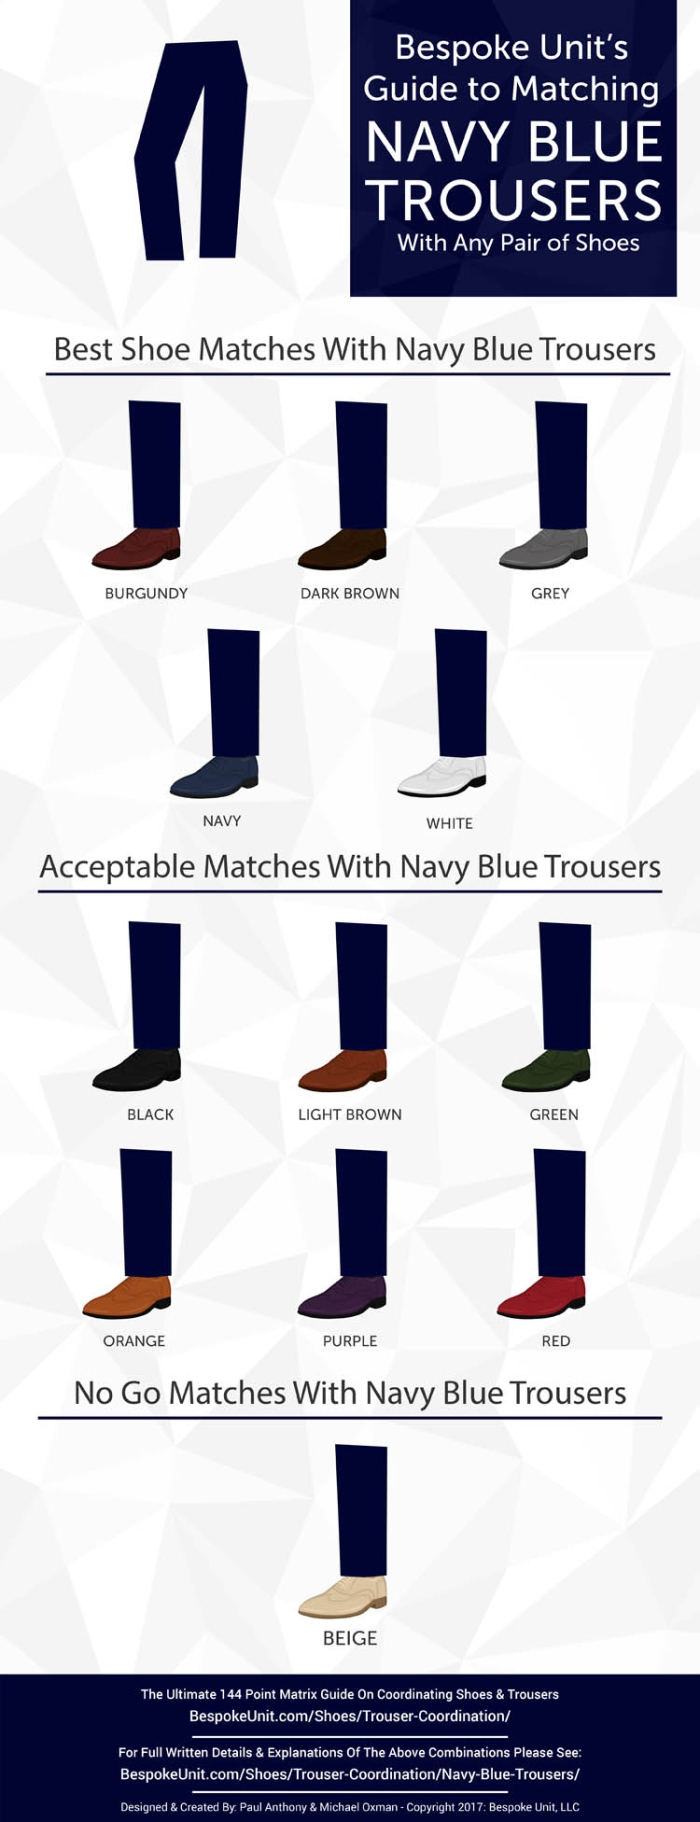 How To Pair Navy Blue Trousers With Different Shoes